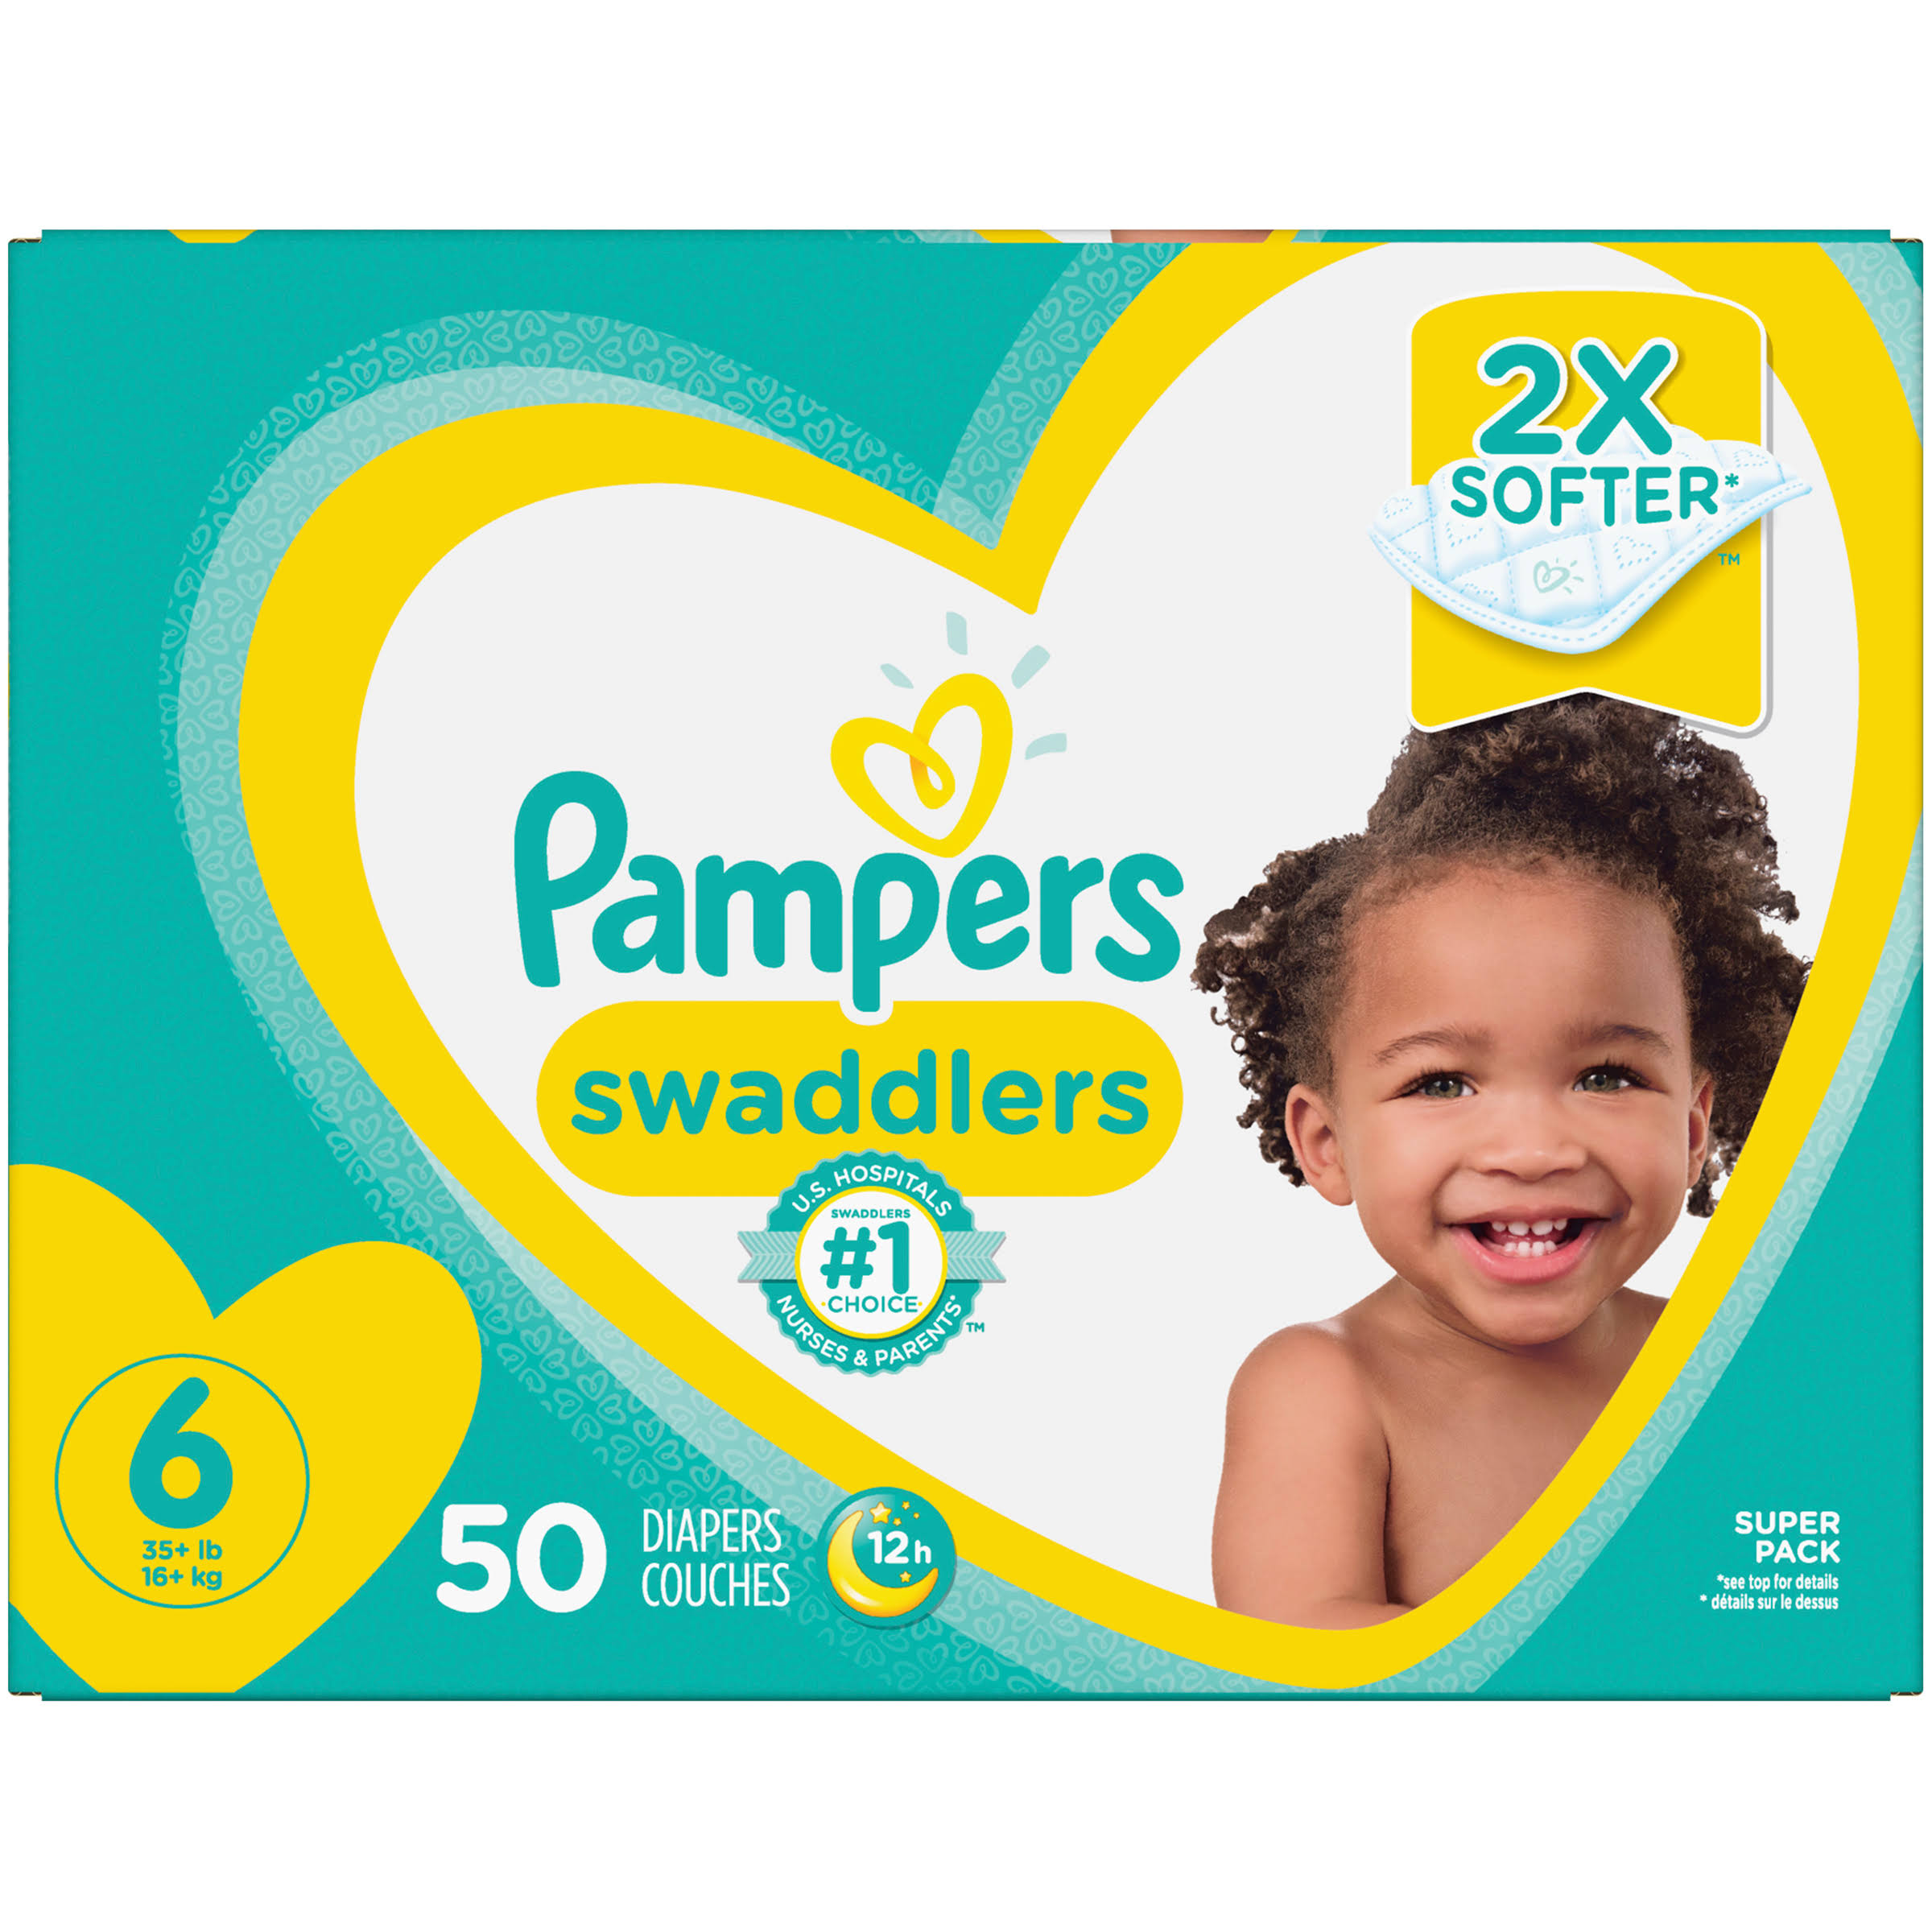 Pampers Swaddlers Diapers, Size 6 - 50 Count